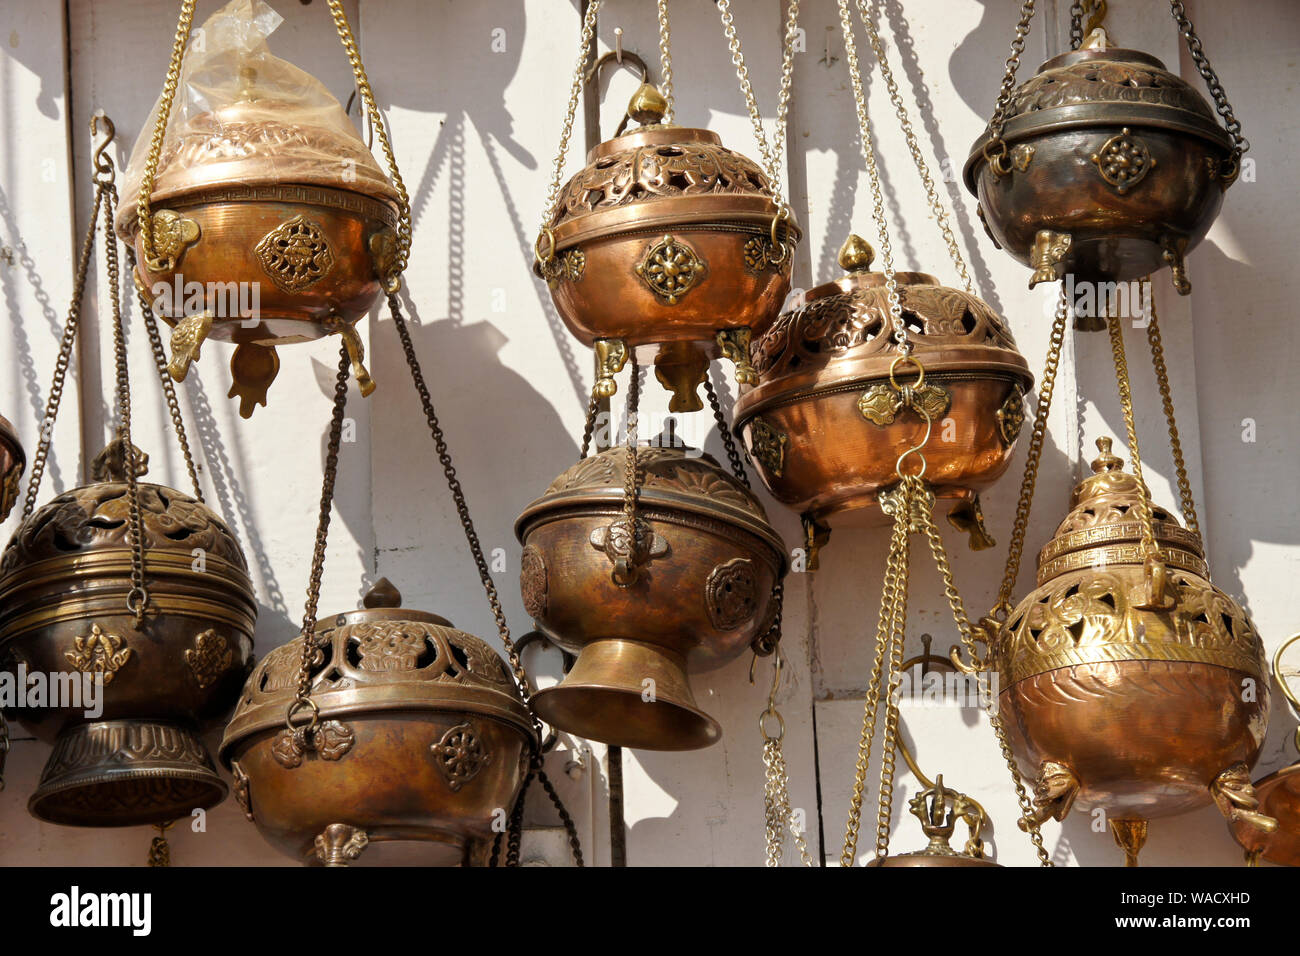 Tibetan Buddhist Hanging Incense Burners For Sale In Shop At Boudhanath Kathmandu Valley Nepal Stock Photo Alamy